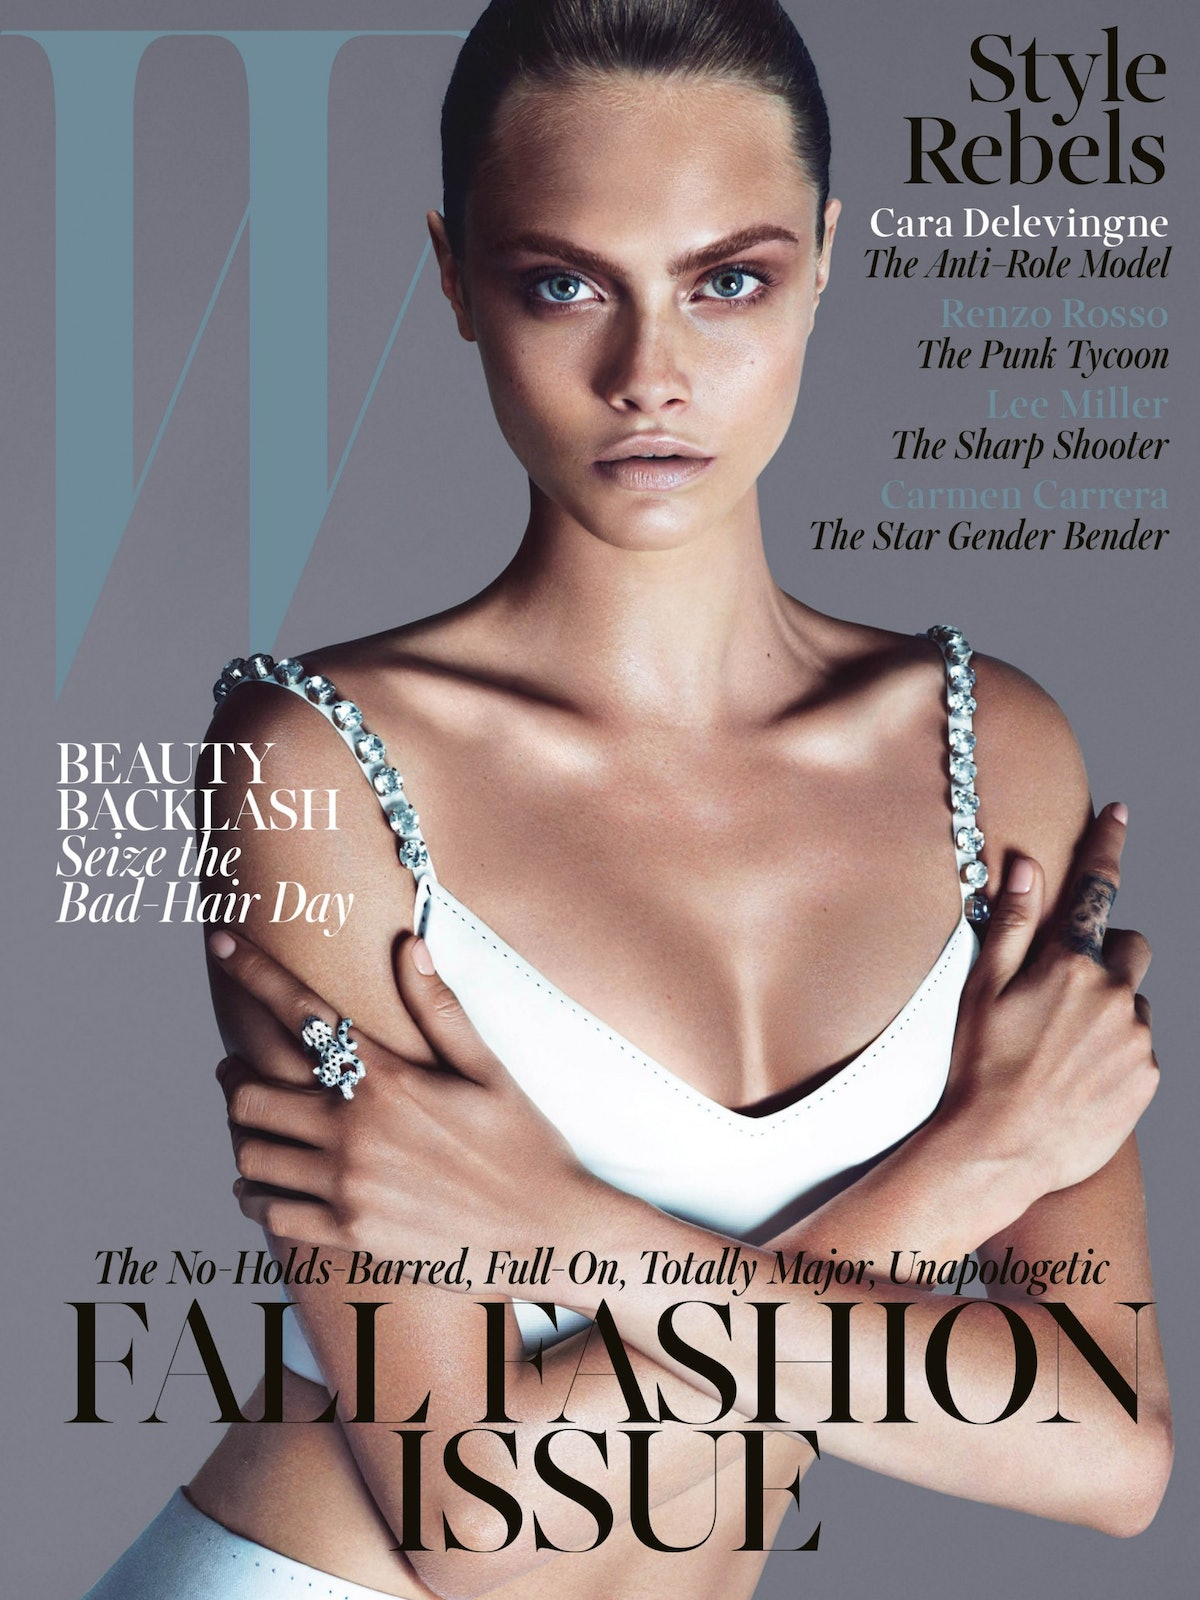 cear-cara-delevingne-model-cover-story-coverlines-1542x2056.jpg